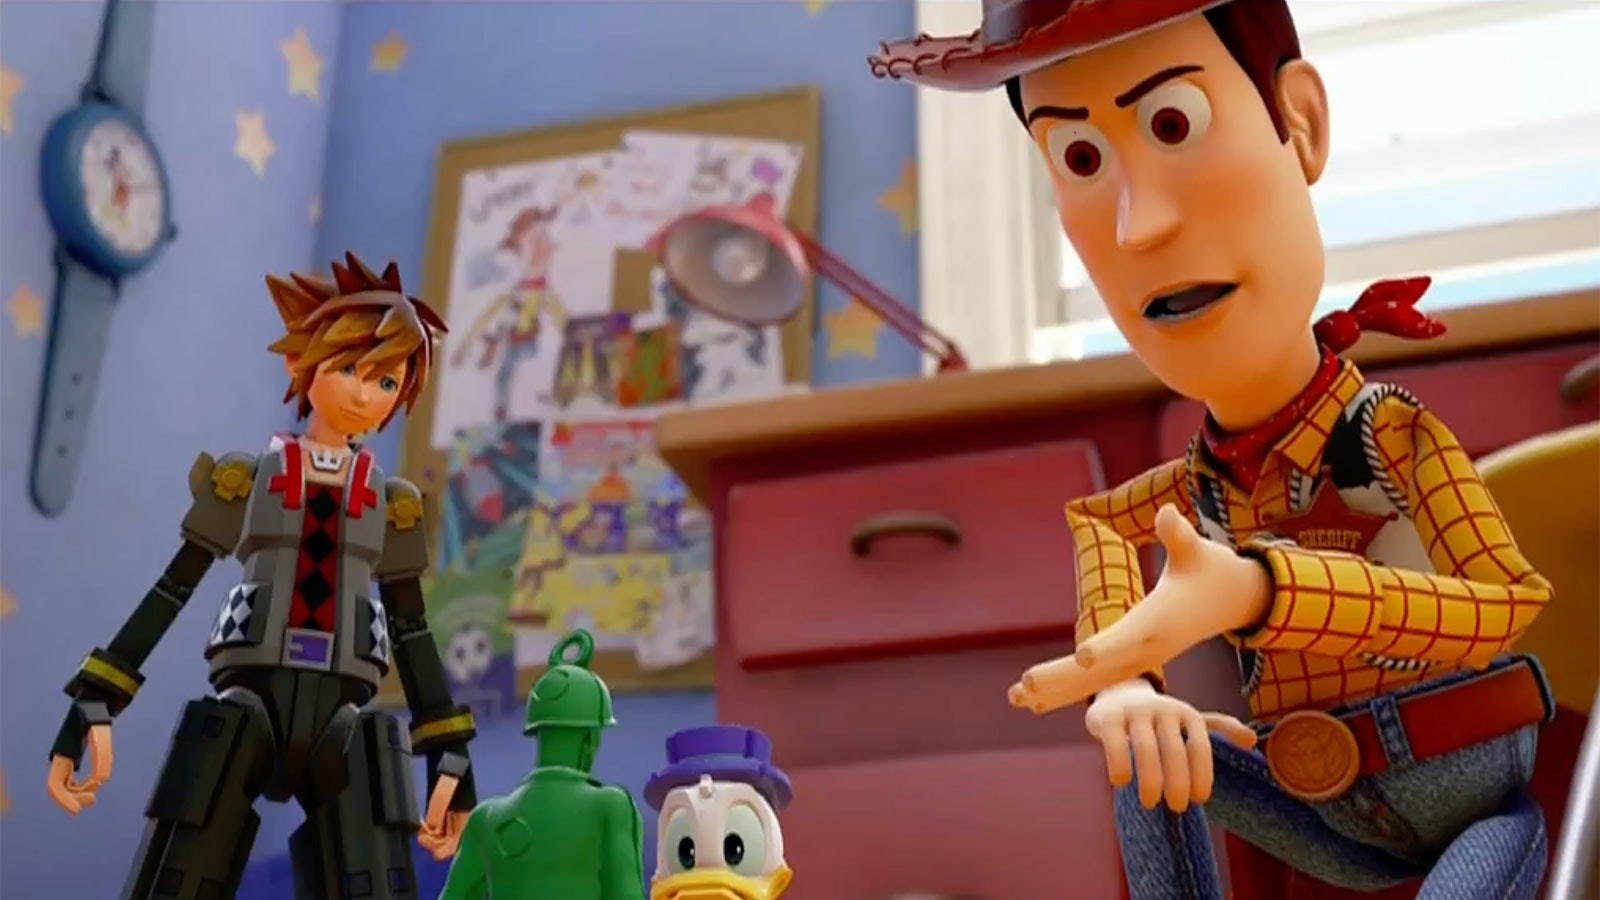 'Kingdom Hearts III' has a world devoted to 'Toy Story'.